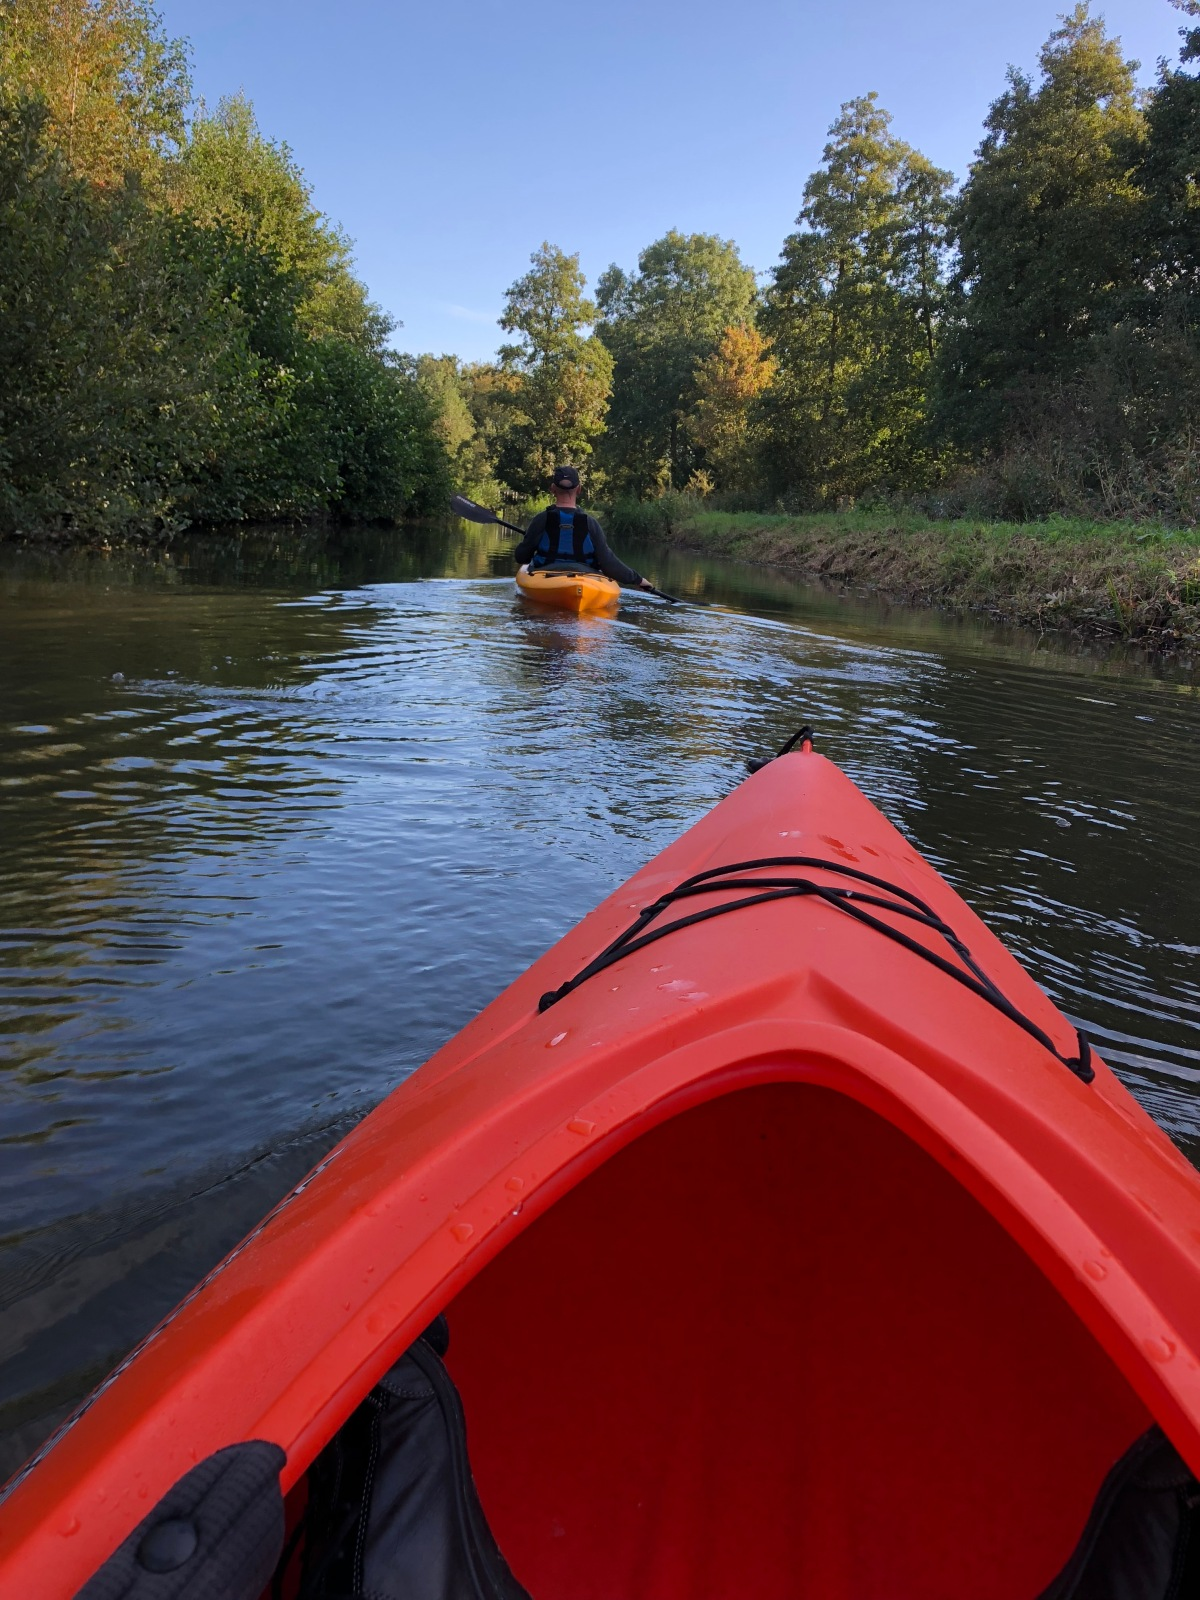 Fall colors, clear sky, quiet waters to explore